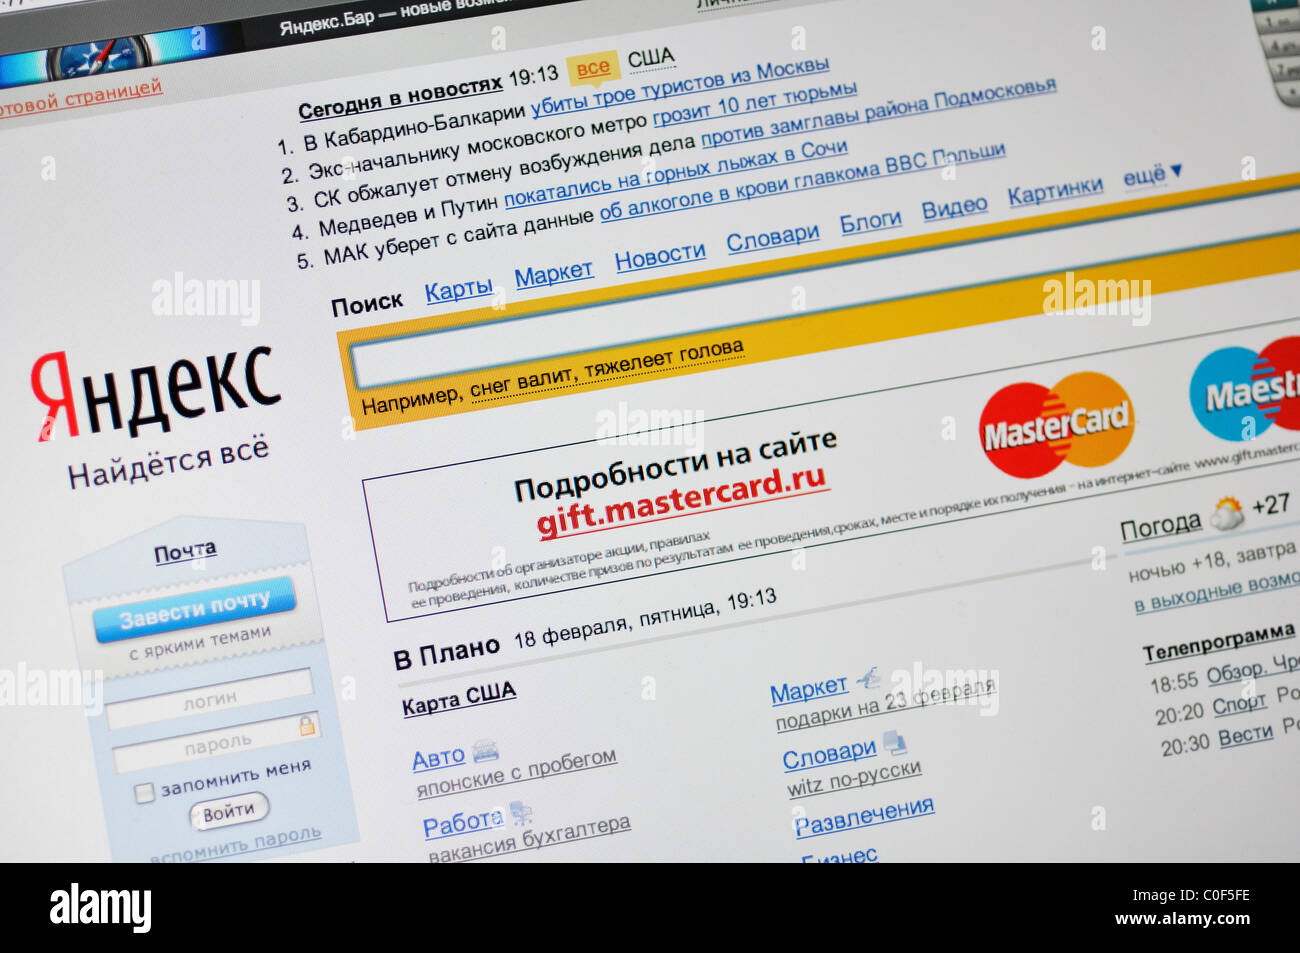 Yandex - Russian search engine website - Stock Image